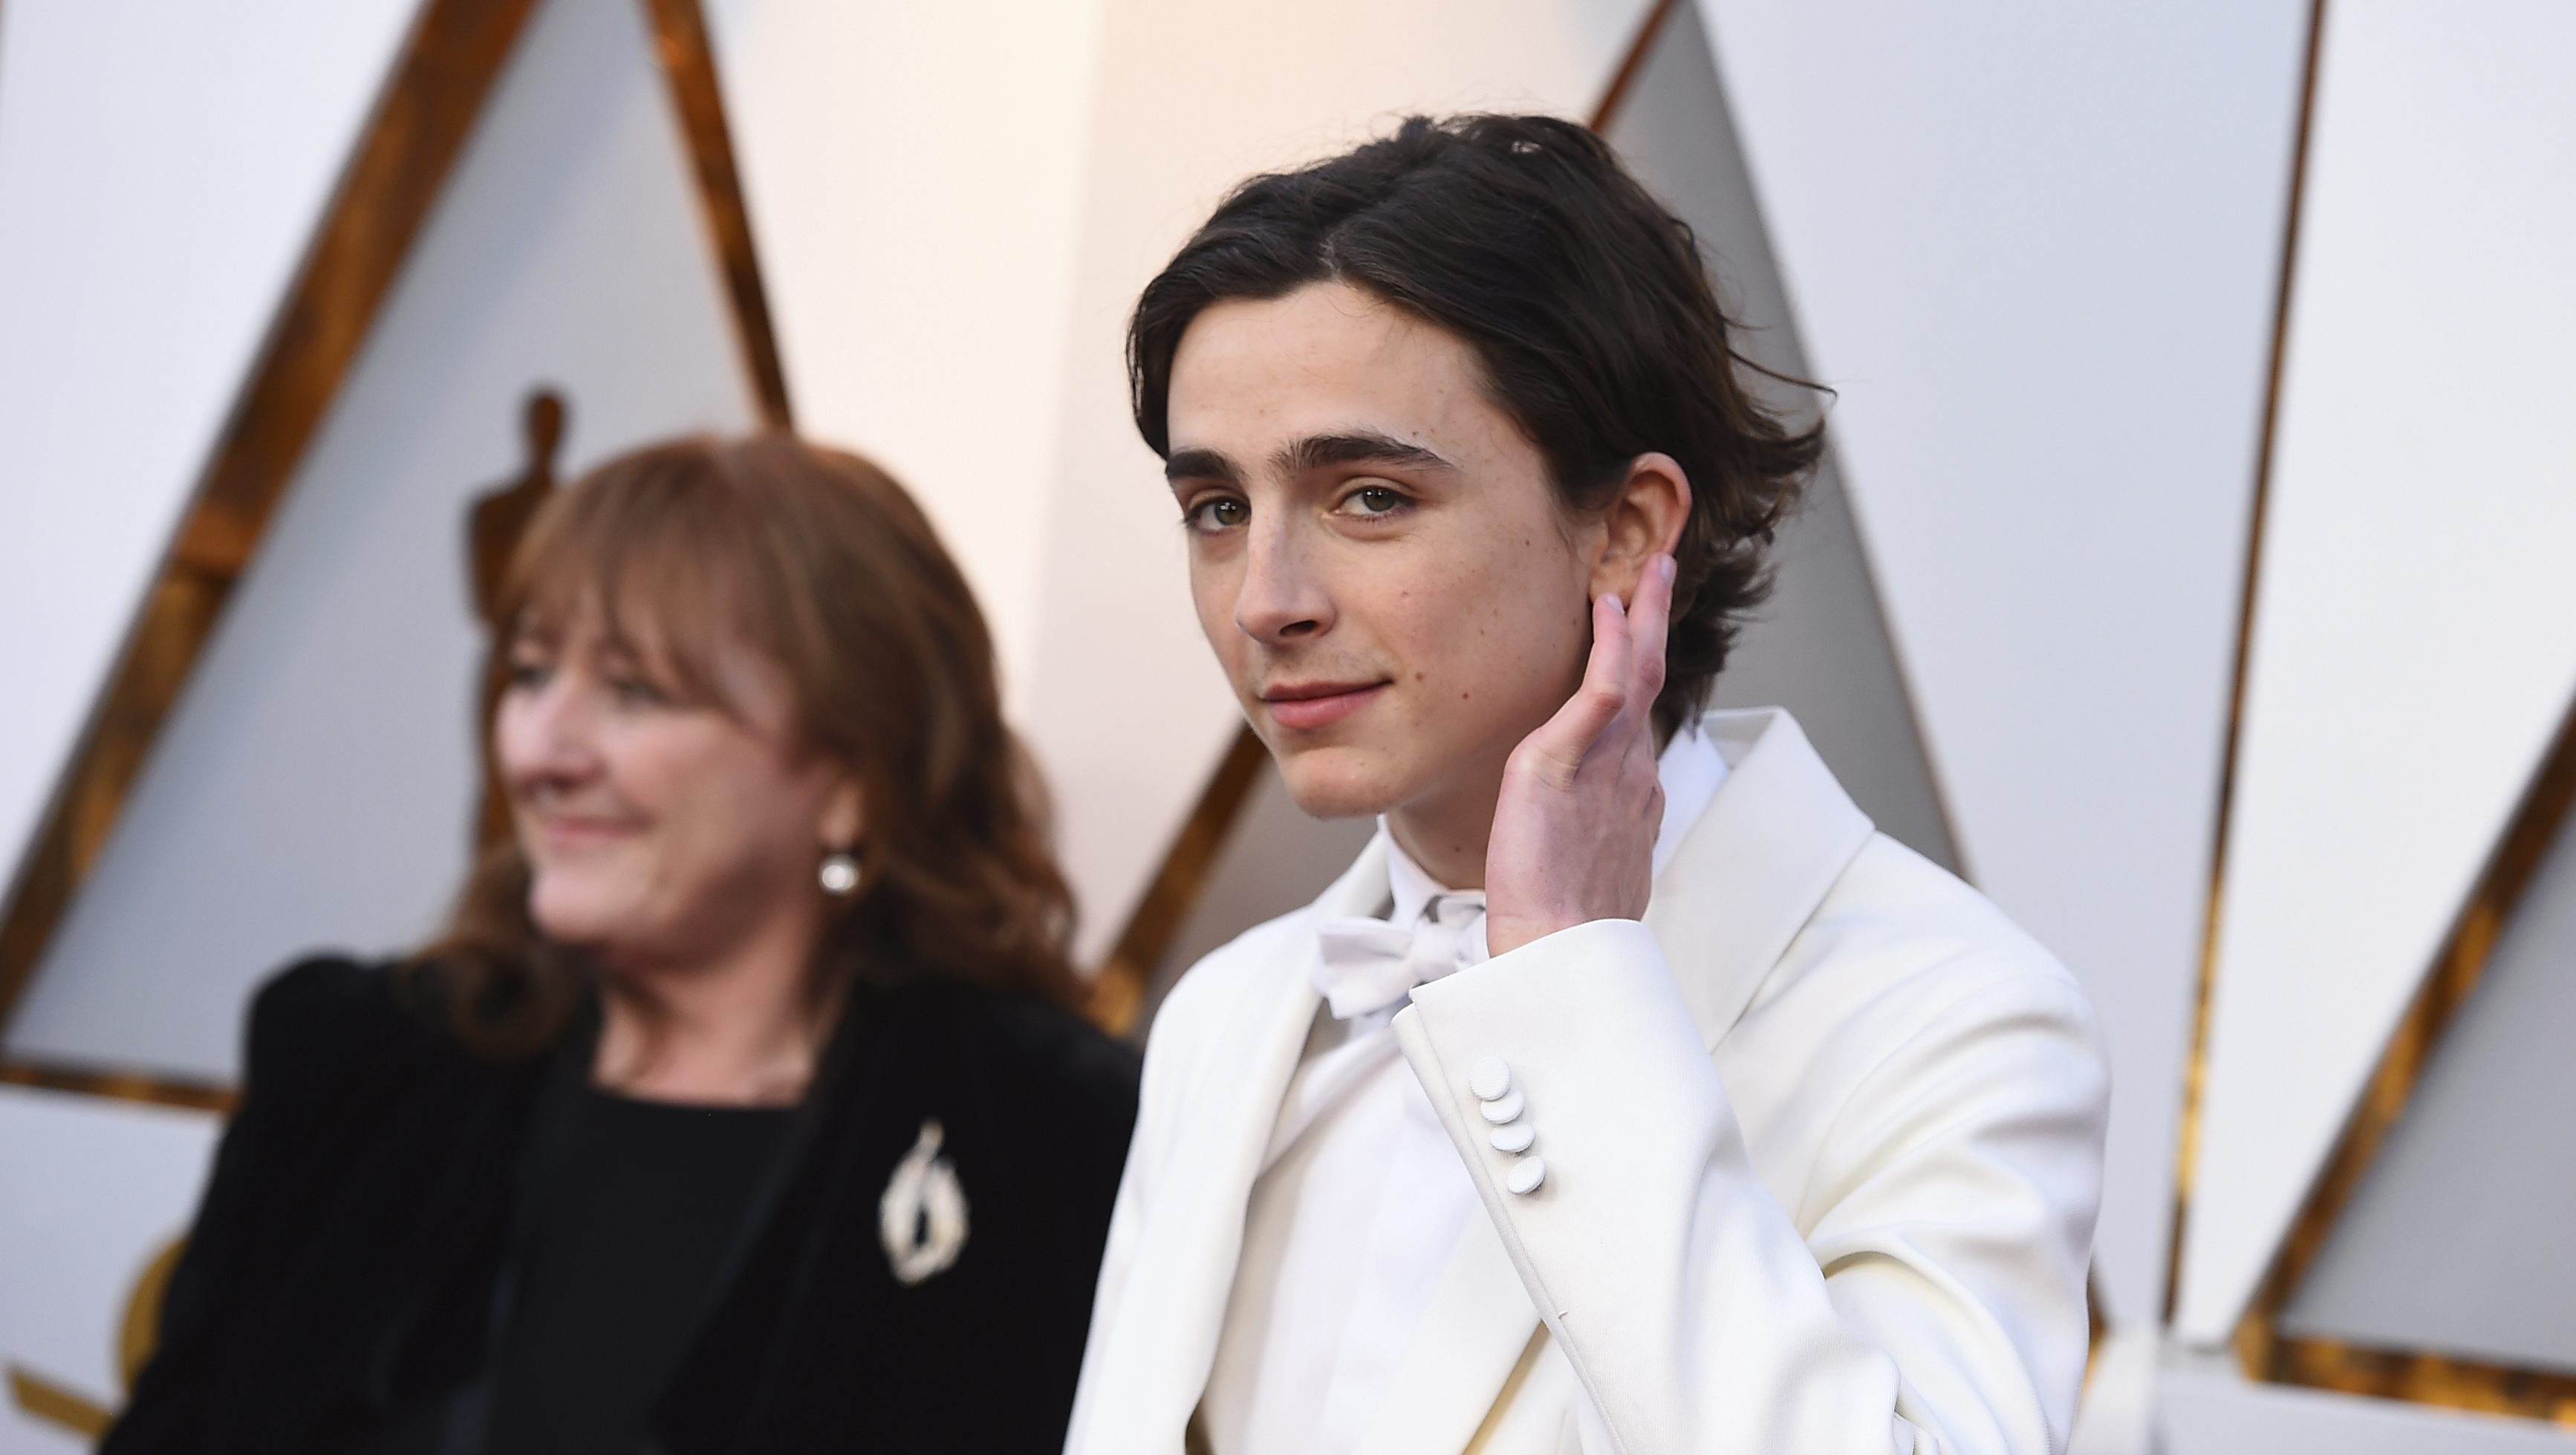 Timothee Chalamet arrives at the Oscars on Sunday, March 4, 2018, at the Dolby Theatre in Los Angeles. (Photo by Jordan Strauss/Invision/AP)